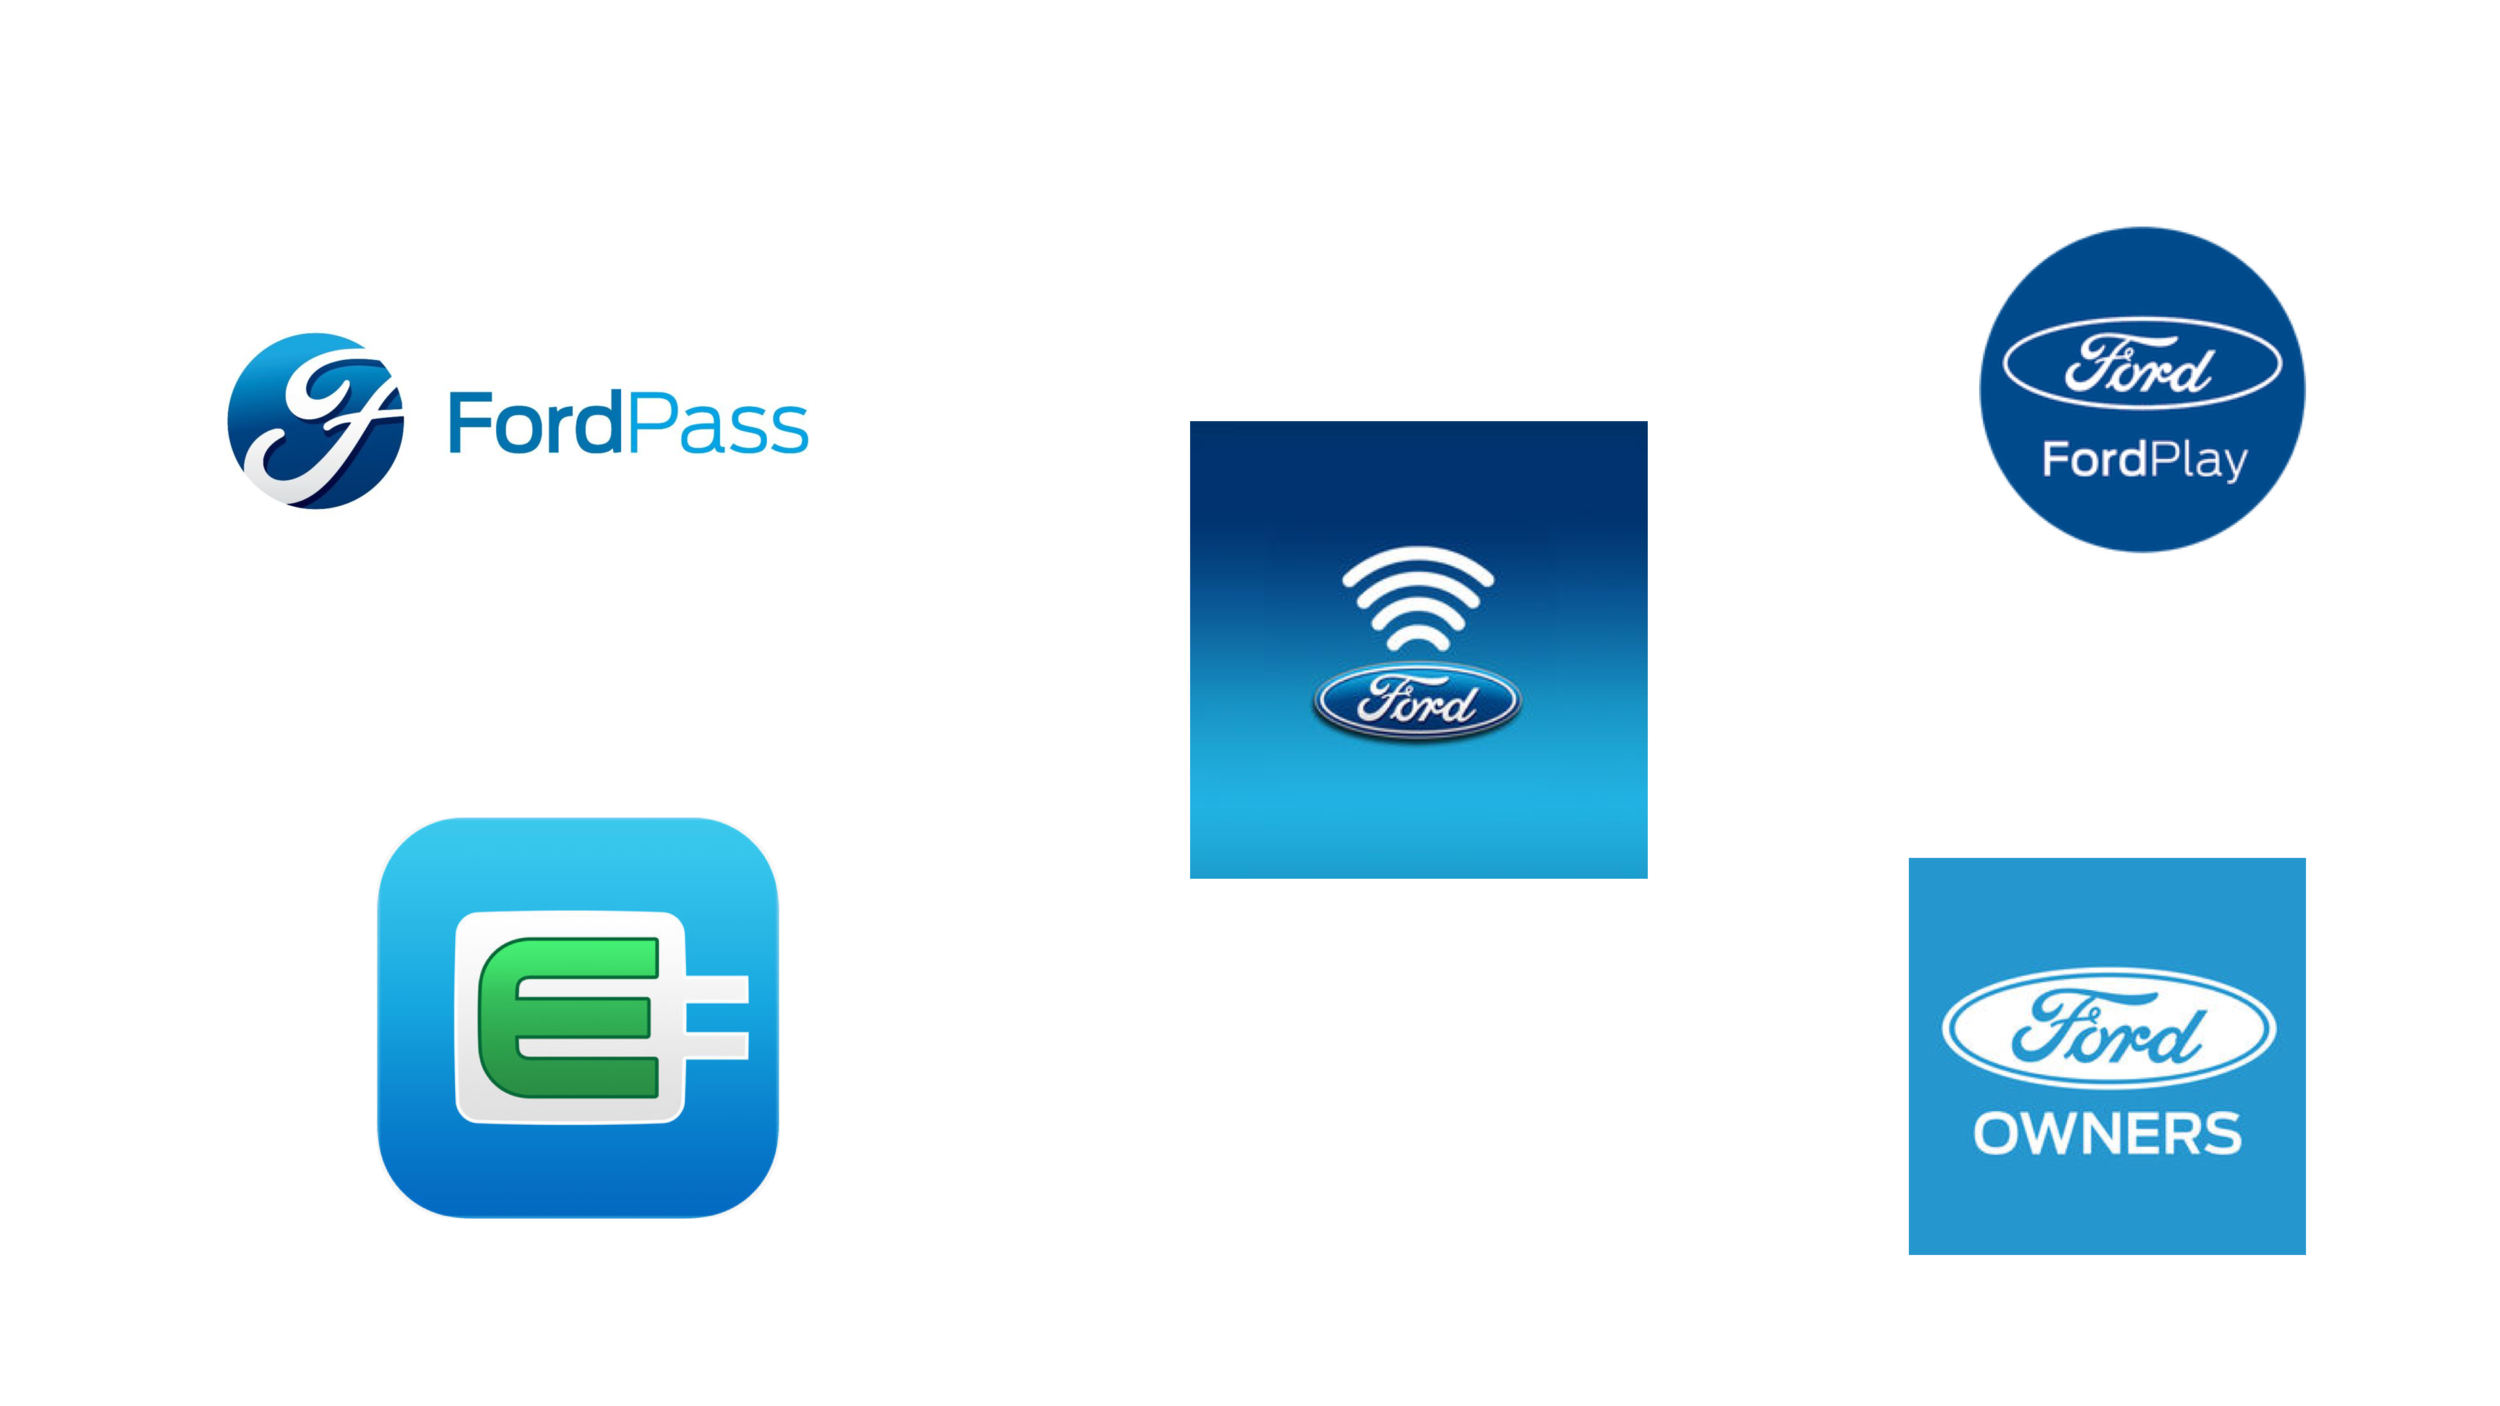 Limited utility of apps - There are multiple apps like Ford Owners, FordPass, Ford Remote, and Ford Social (U.S. website, no app)for different functions across different markets. While FordPass is a capable app available in limited markets, the other apps are severely limited in their utility.